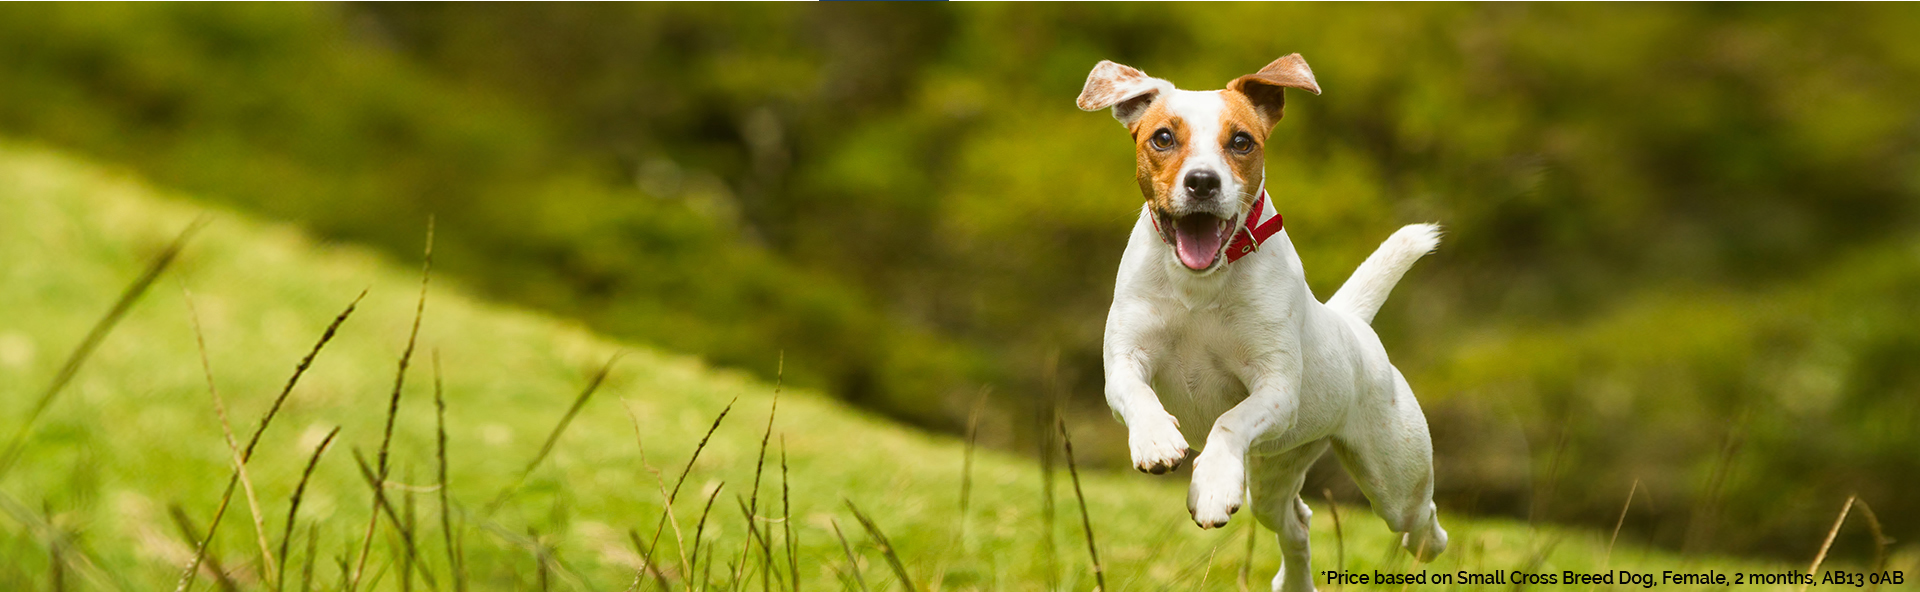 affordable pet insurance for